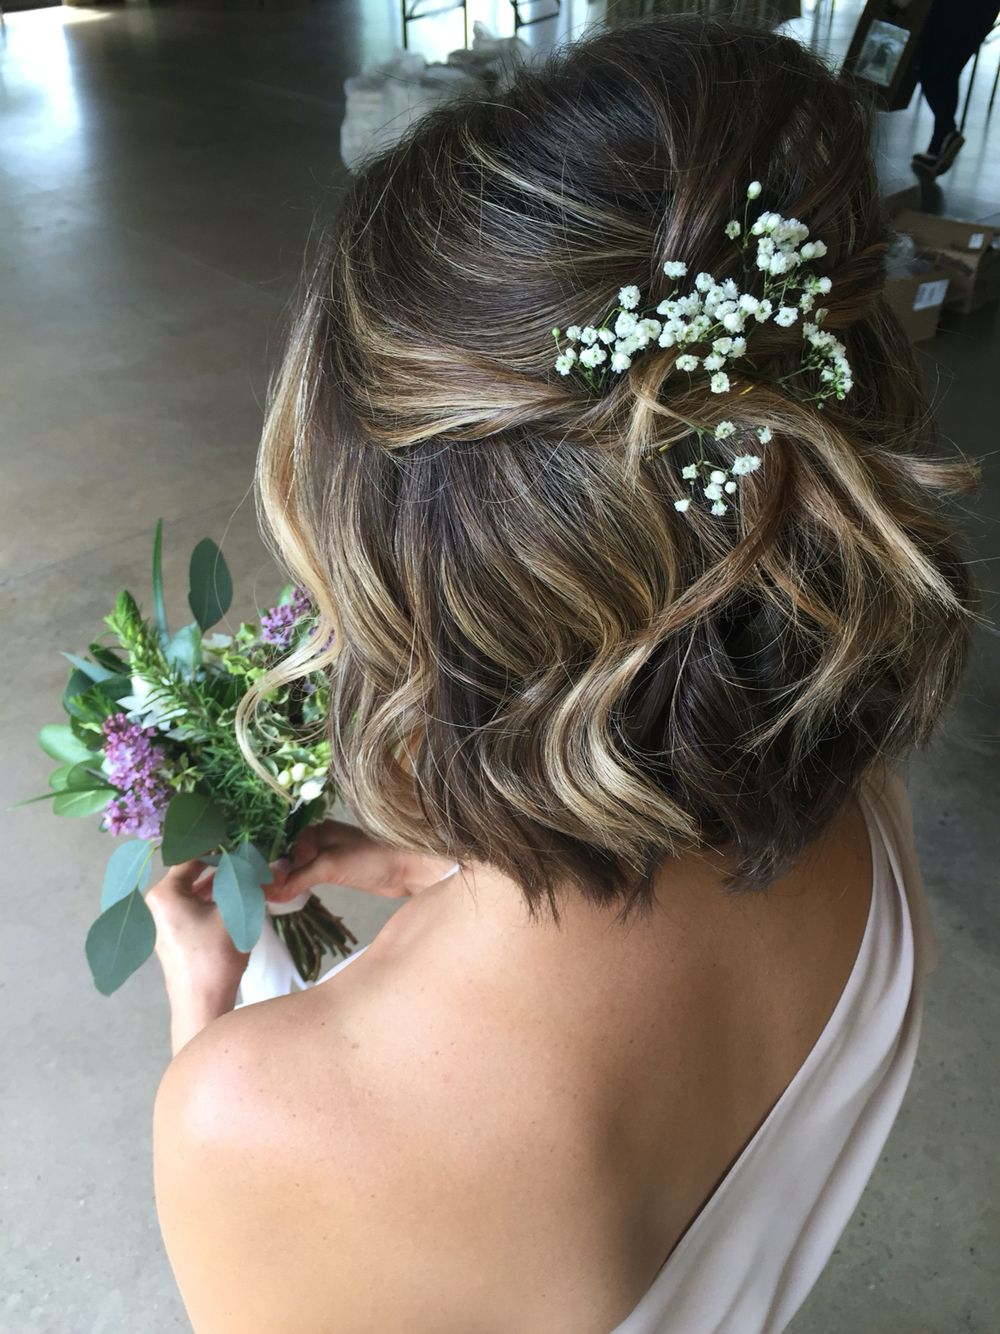 pin by katelynn horne on hair | pinterest | peinados boda